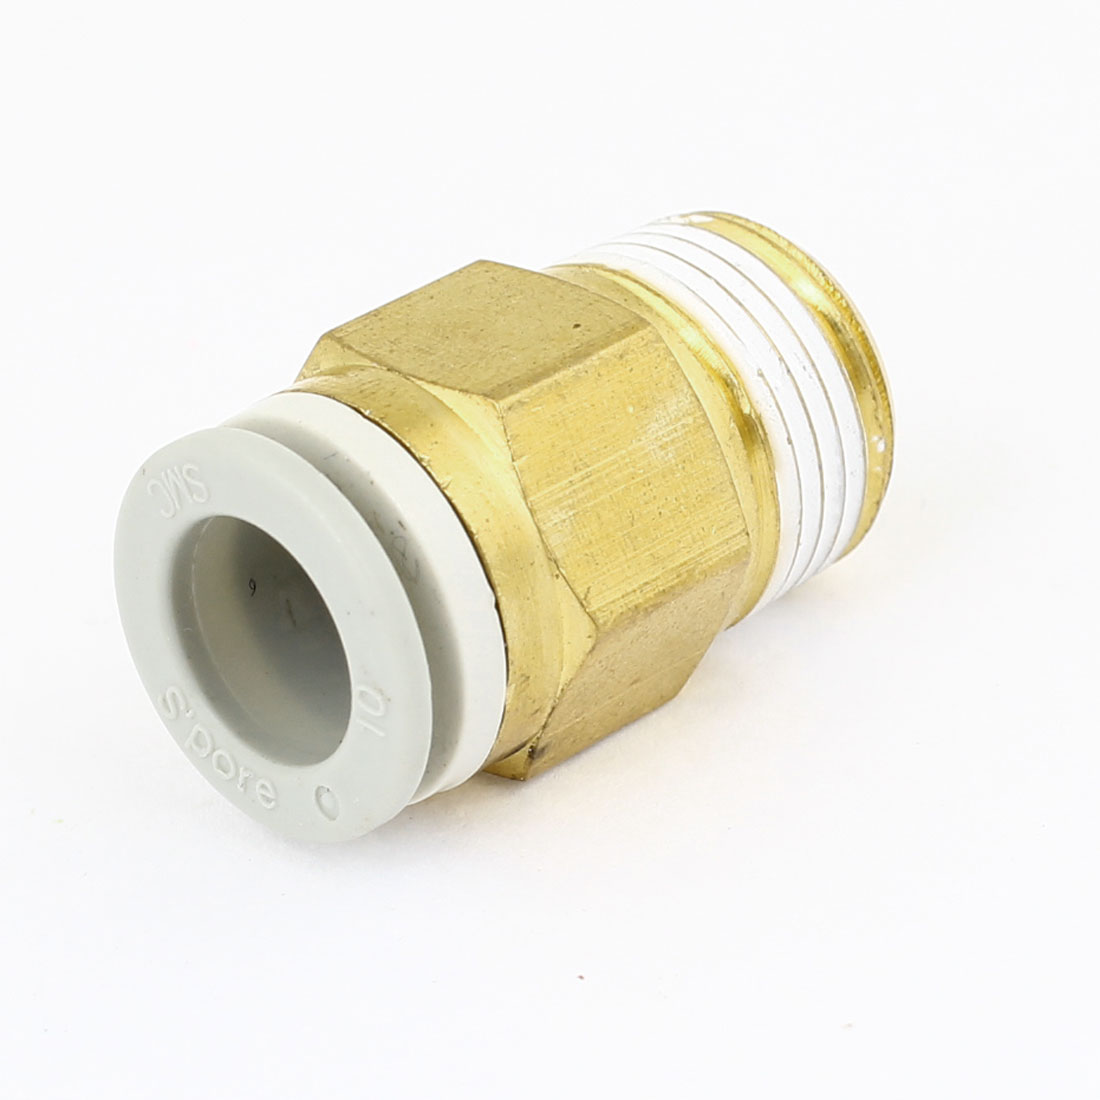 "Pneumatic One Touch Push In Quick Fitting 3/8"" PT Thread for 10mm Air Tube"